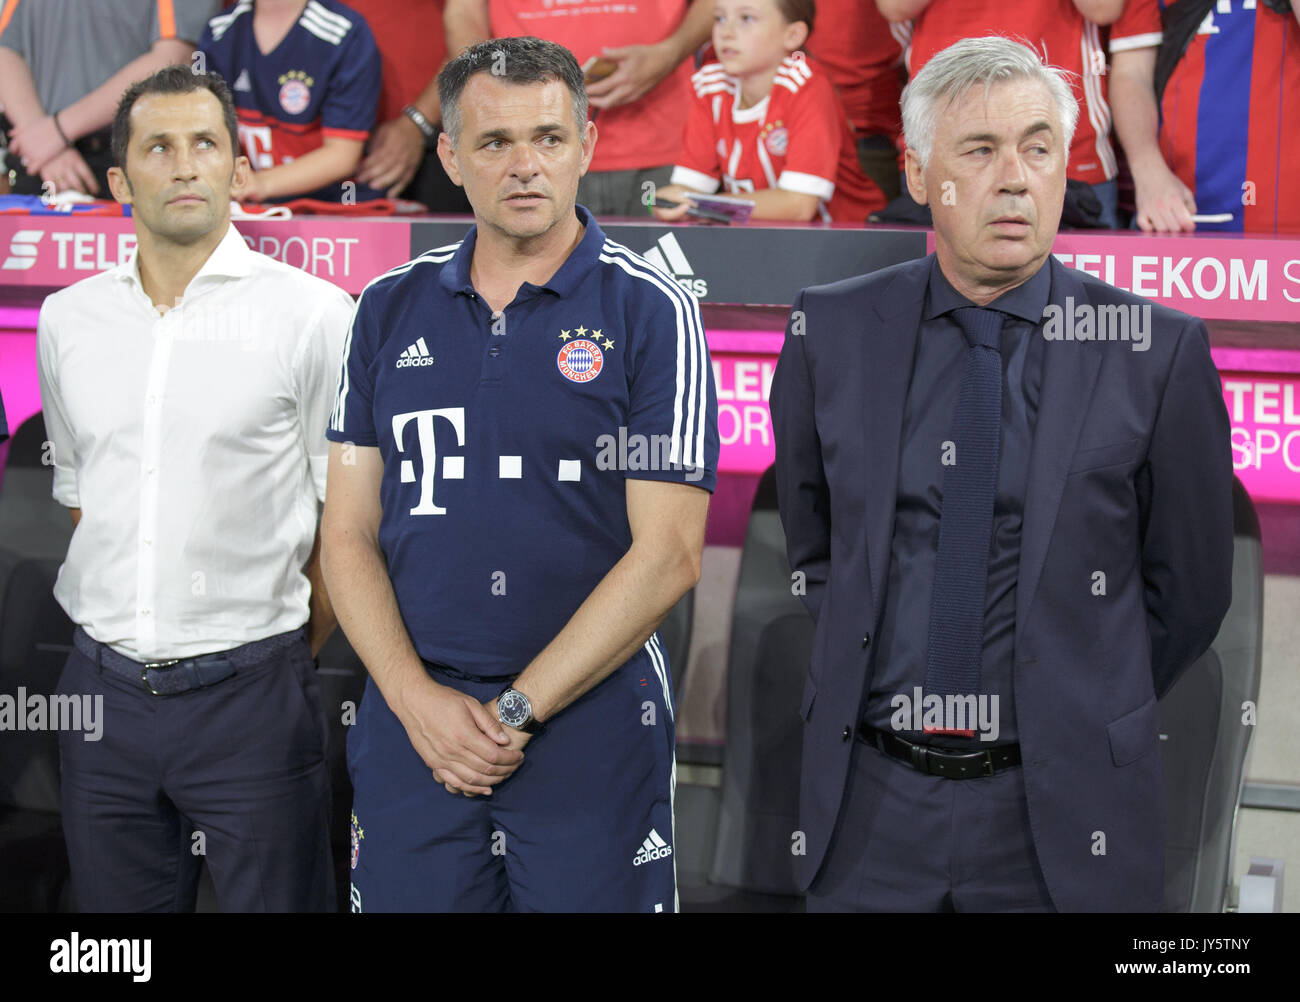 Deutschland. 18th Aug, 2017. vl. Sportdirektor Hasan SALIHAMIDZIC (FC Bayern), Co-Trainer/Assistenztrainer Willy SAGNOL (FC Bayern) und Trainer Carlo ANCELOTTI (FC Bayern) GES/ Fussball/ 1. Bundesliga: FC Bayern Munich - Bayer 04 Leverkusen, 18.08.2017 -- Football/ Soccer 1st. German Bundesliga Division: Bavaria Munich vs Bayer 04 Leverkusen, Munich, August 18, 2017 | Verwendung weltweit Credit: dpa/Alamy Live News - Stock Image